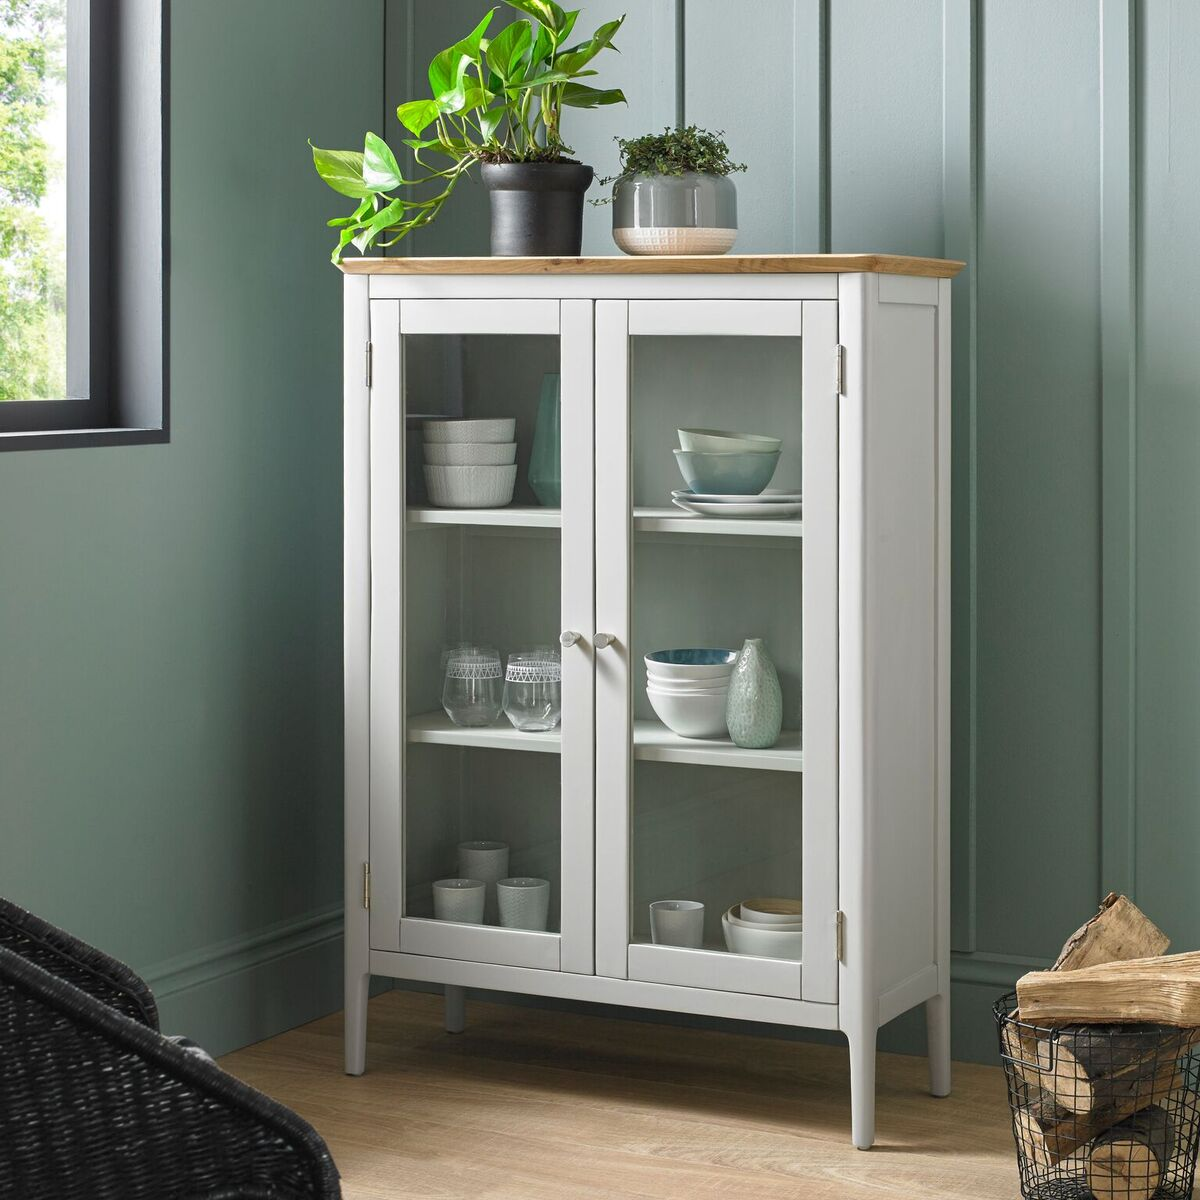 Hereford Astley Glazed Cabinet